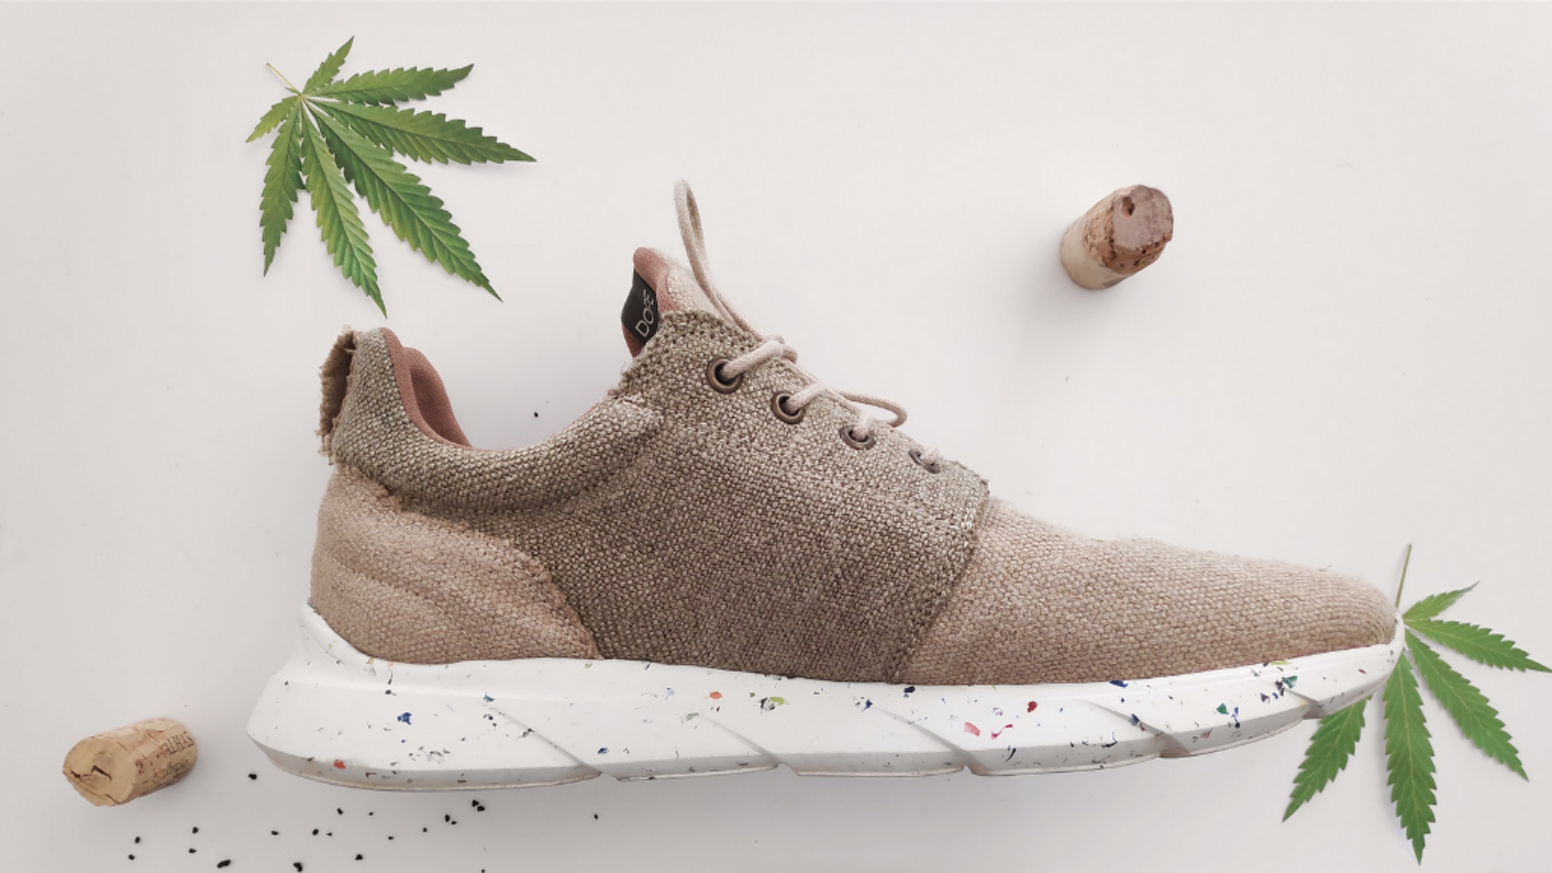 Presenting the world's 1st eco-friendly shoes made from hemp, that are also waterproof. The shoes you will explore with for a lifetime. Pre-Orders continued on Indiegogo!